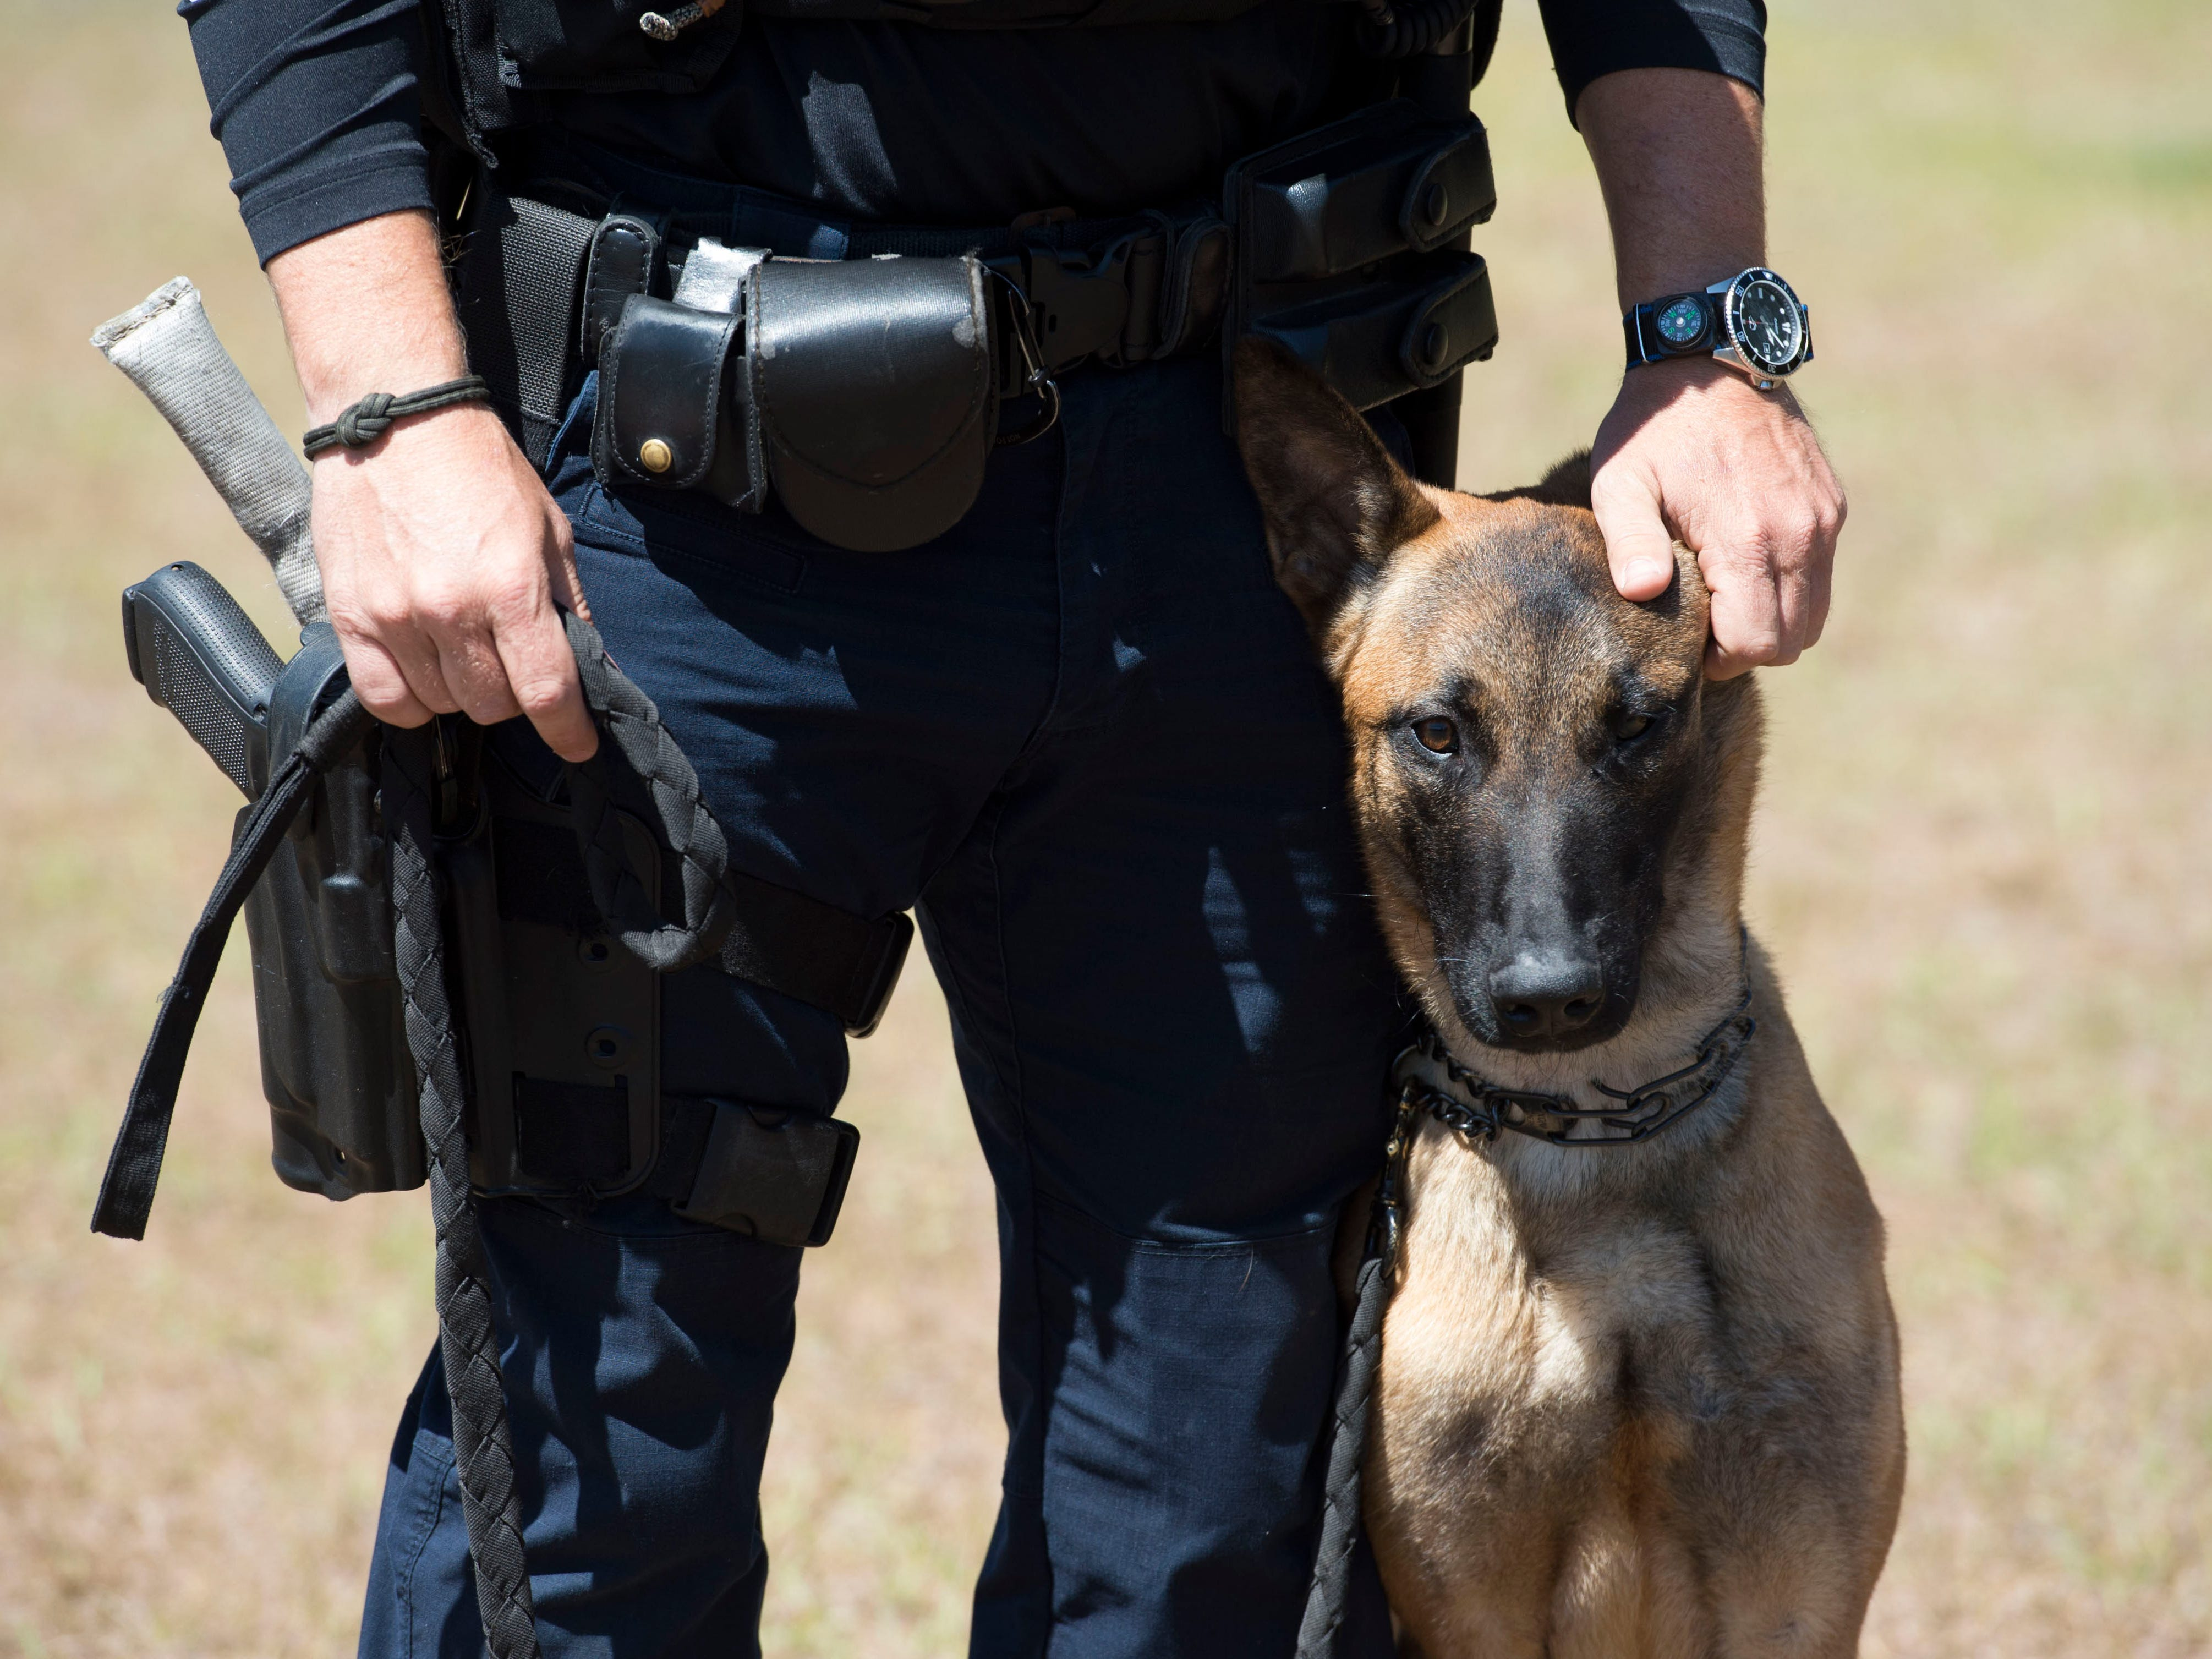 """Port St. Lucie Police Officer Will Harris introduced his new partner, K-9 Bodhi, a 1-year-old Belgian Malinois, on March 21, 2018 at Port St. Lucie Police Department K-9 training site at McCarty Ranch Preserve in Port St. Lucie. Harris, who was celebrating his 15th anniversary with the police department, applauded Bodhi's progress since he began training in January. """"He's got a lot more on his shoulders,"""" Harris said about Bodhi being a patrol and explosives detection K-9. """"He's been a tenacious worker so far. He's definitely suited for the job."""" Bodhi replaced Harris' former K-9 partner, Oliver, who retired in January after years of service. Harris hoped Bodhi would finish training in May and then be certified through the National Police Canine Association. """"He's been a very busy boy. At the end of each training day he gets home and passes out on the floor."""""""